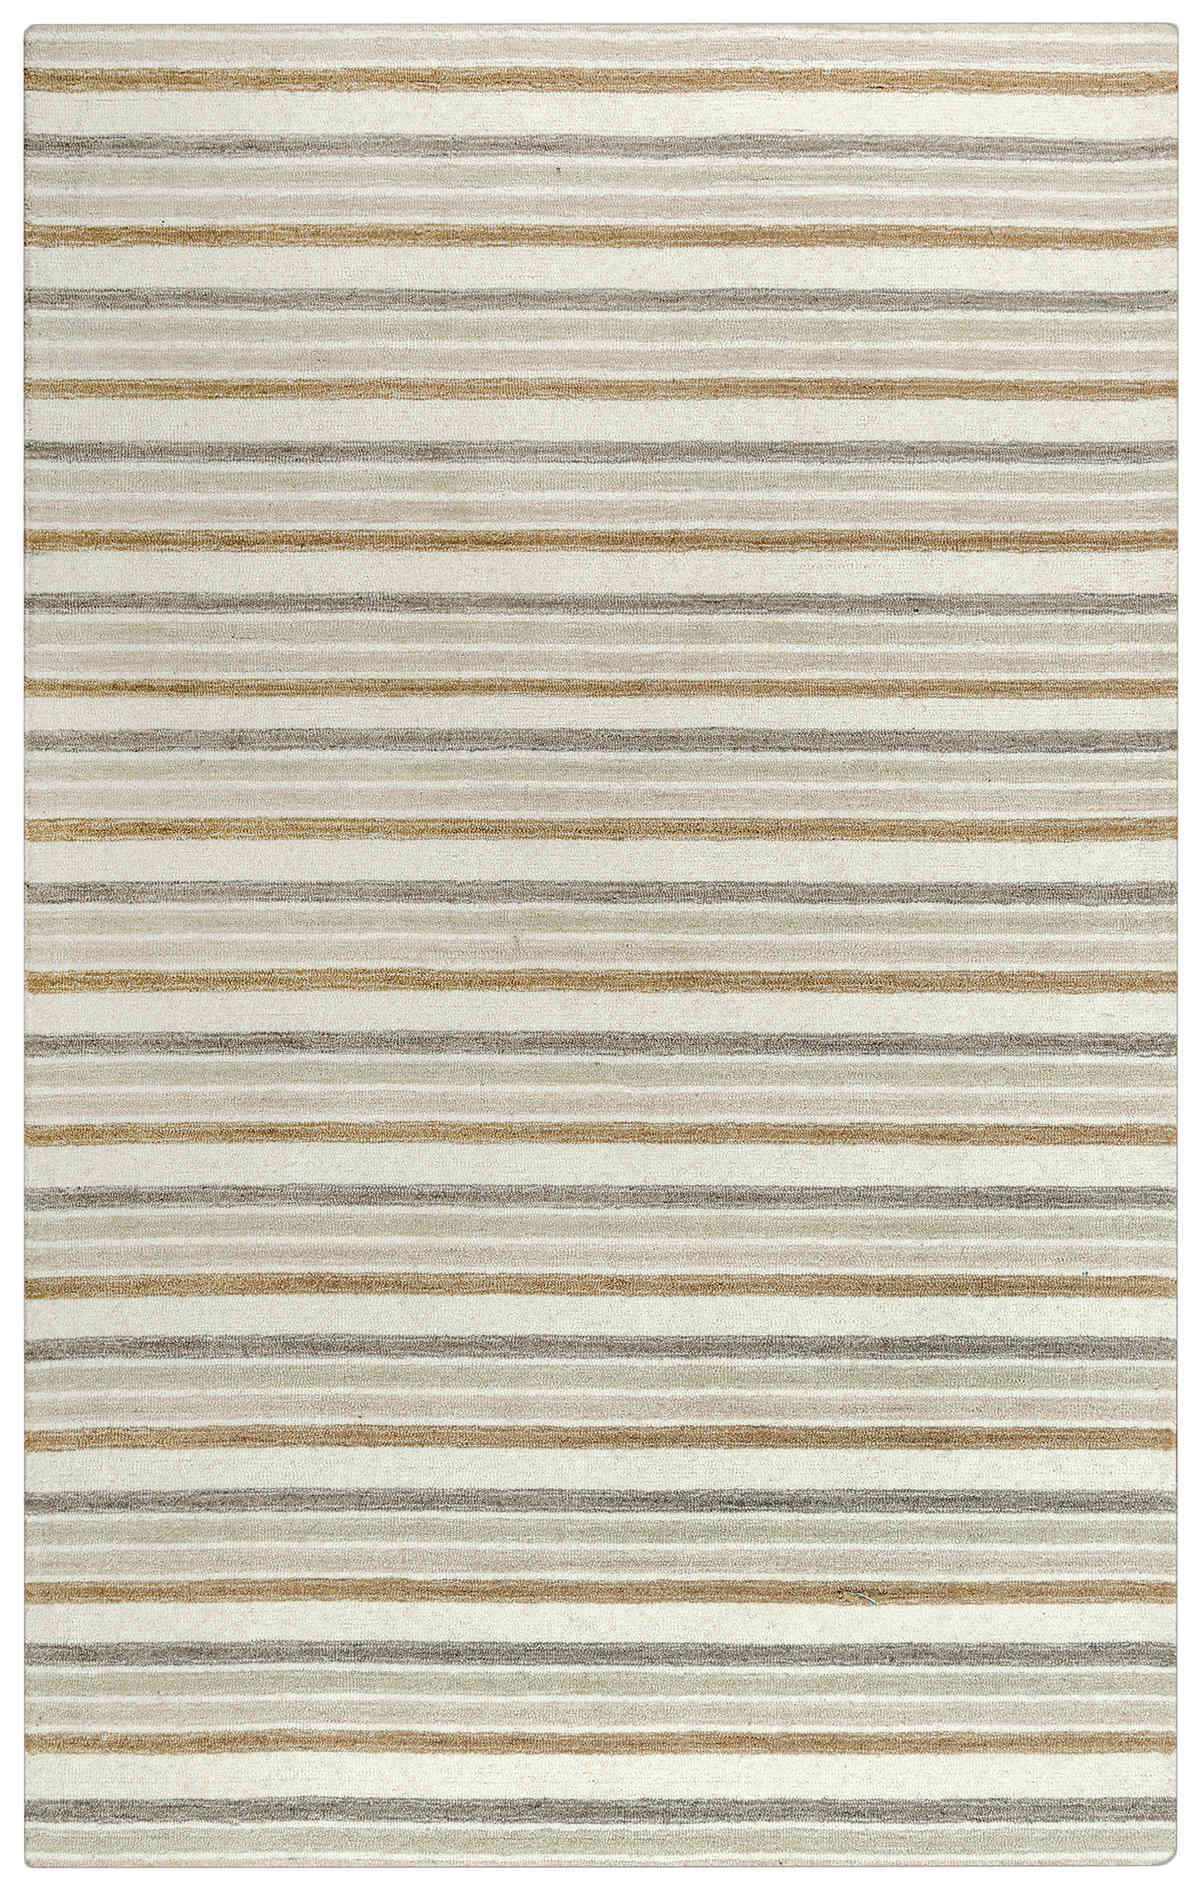 Rizzy Home  Tetra Transtional Beige Rug Tet105